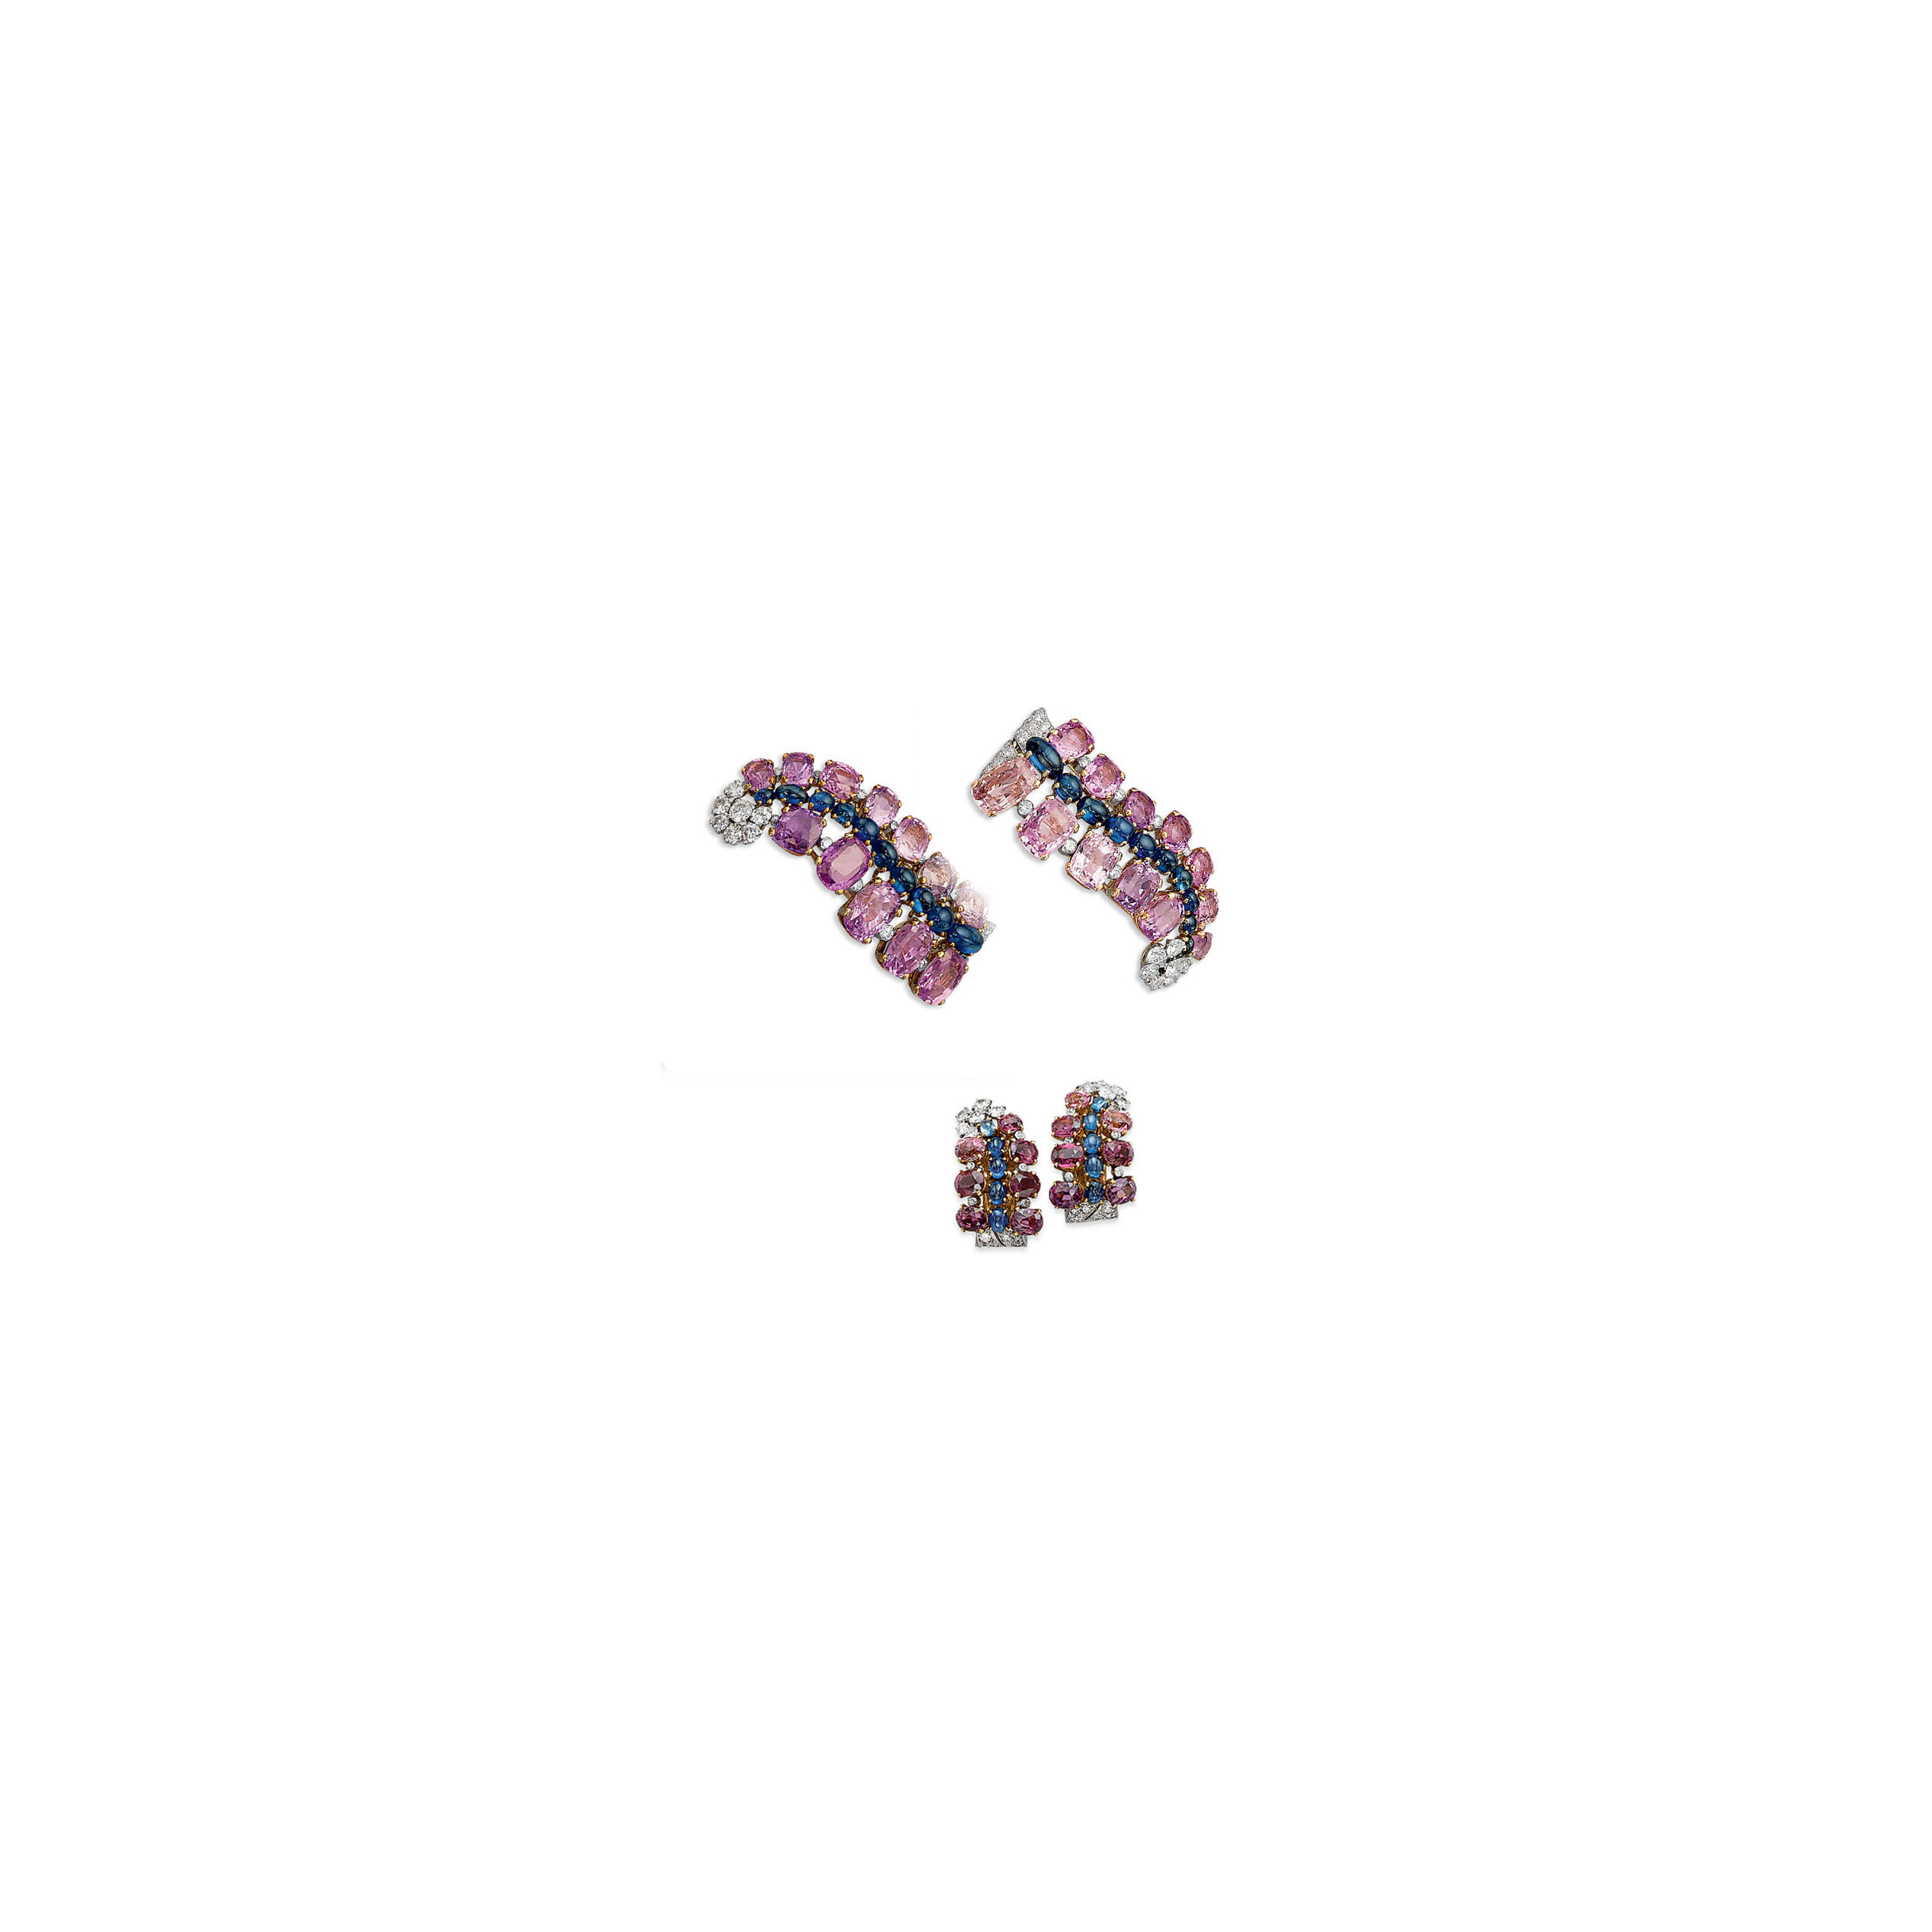 A PAIR OF SAPPHIRE, PINK SAPPHIRE AND DIAMOND BROOCHES, BY CARTIER, AND A PAIR OF EAR CLIPS